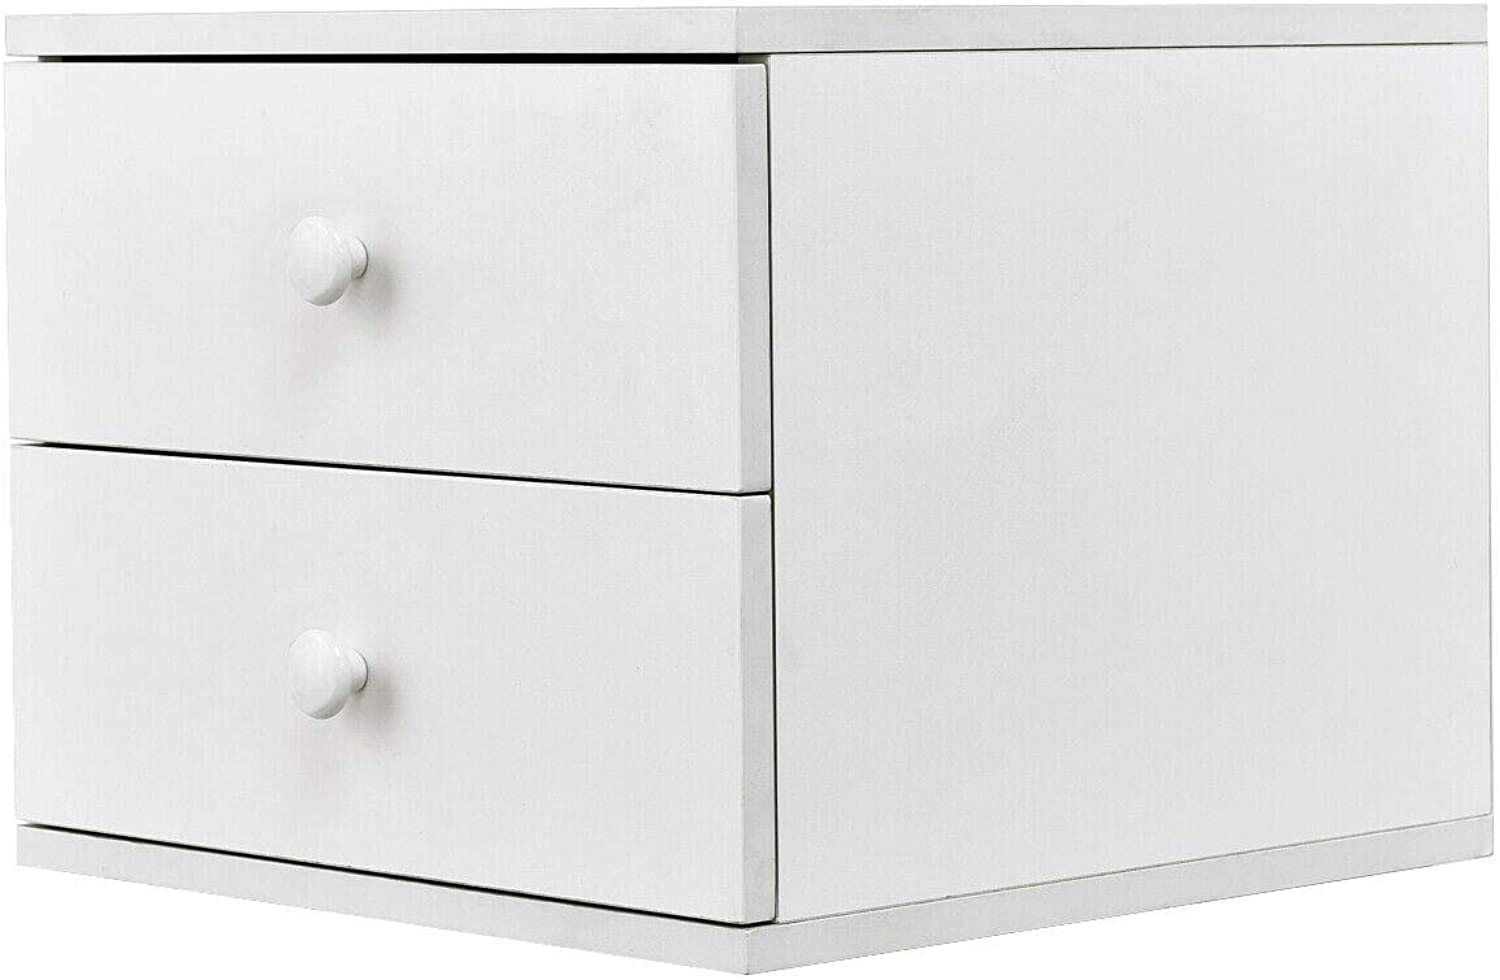 Tangkula Night Stand Contemporary Simple Design Wood Multi-Purpose Home Furniture Side End Table Storage Cabinet with 2 Drawers, White (1)